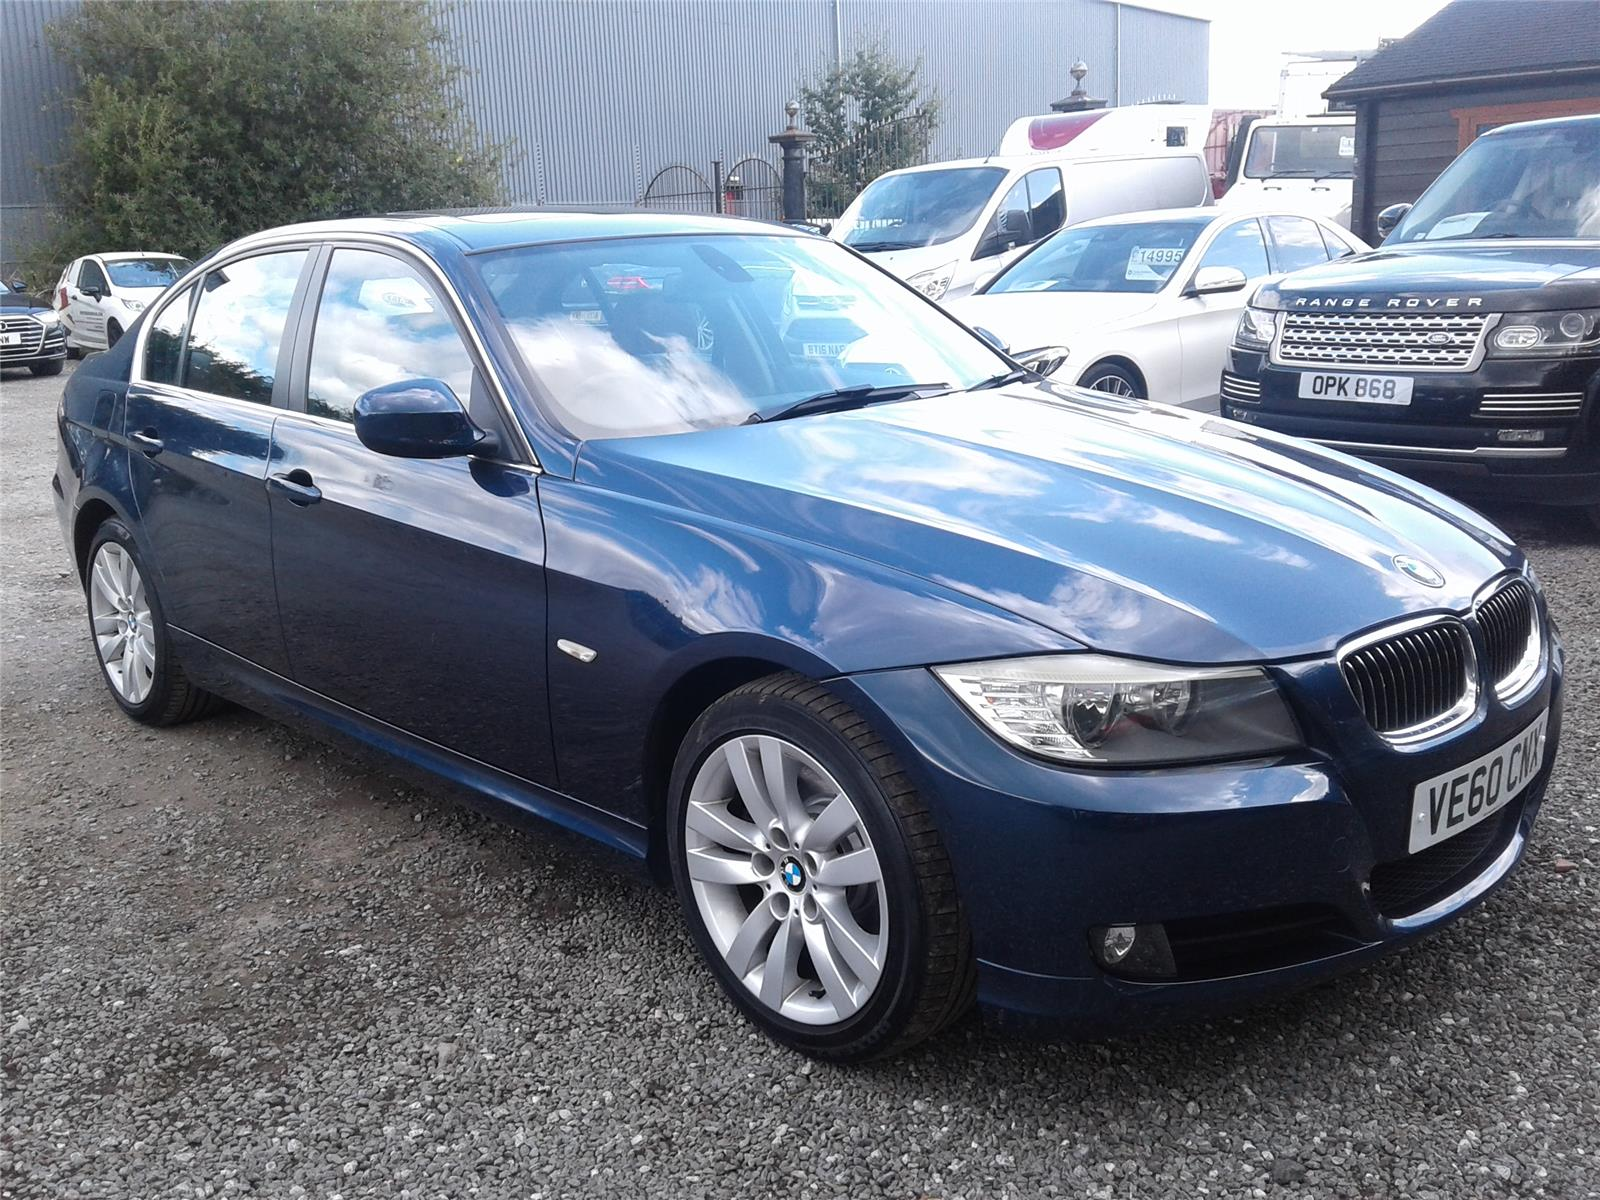 2011 BMW 3 Series 325d SE 2993 Diesel Automatic 6 Speed 4 Door Saloon